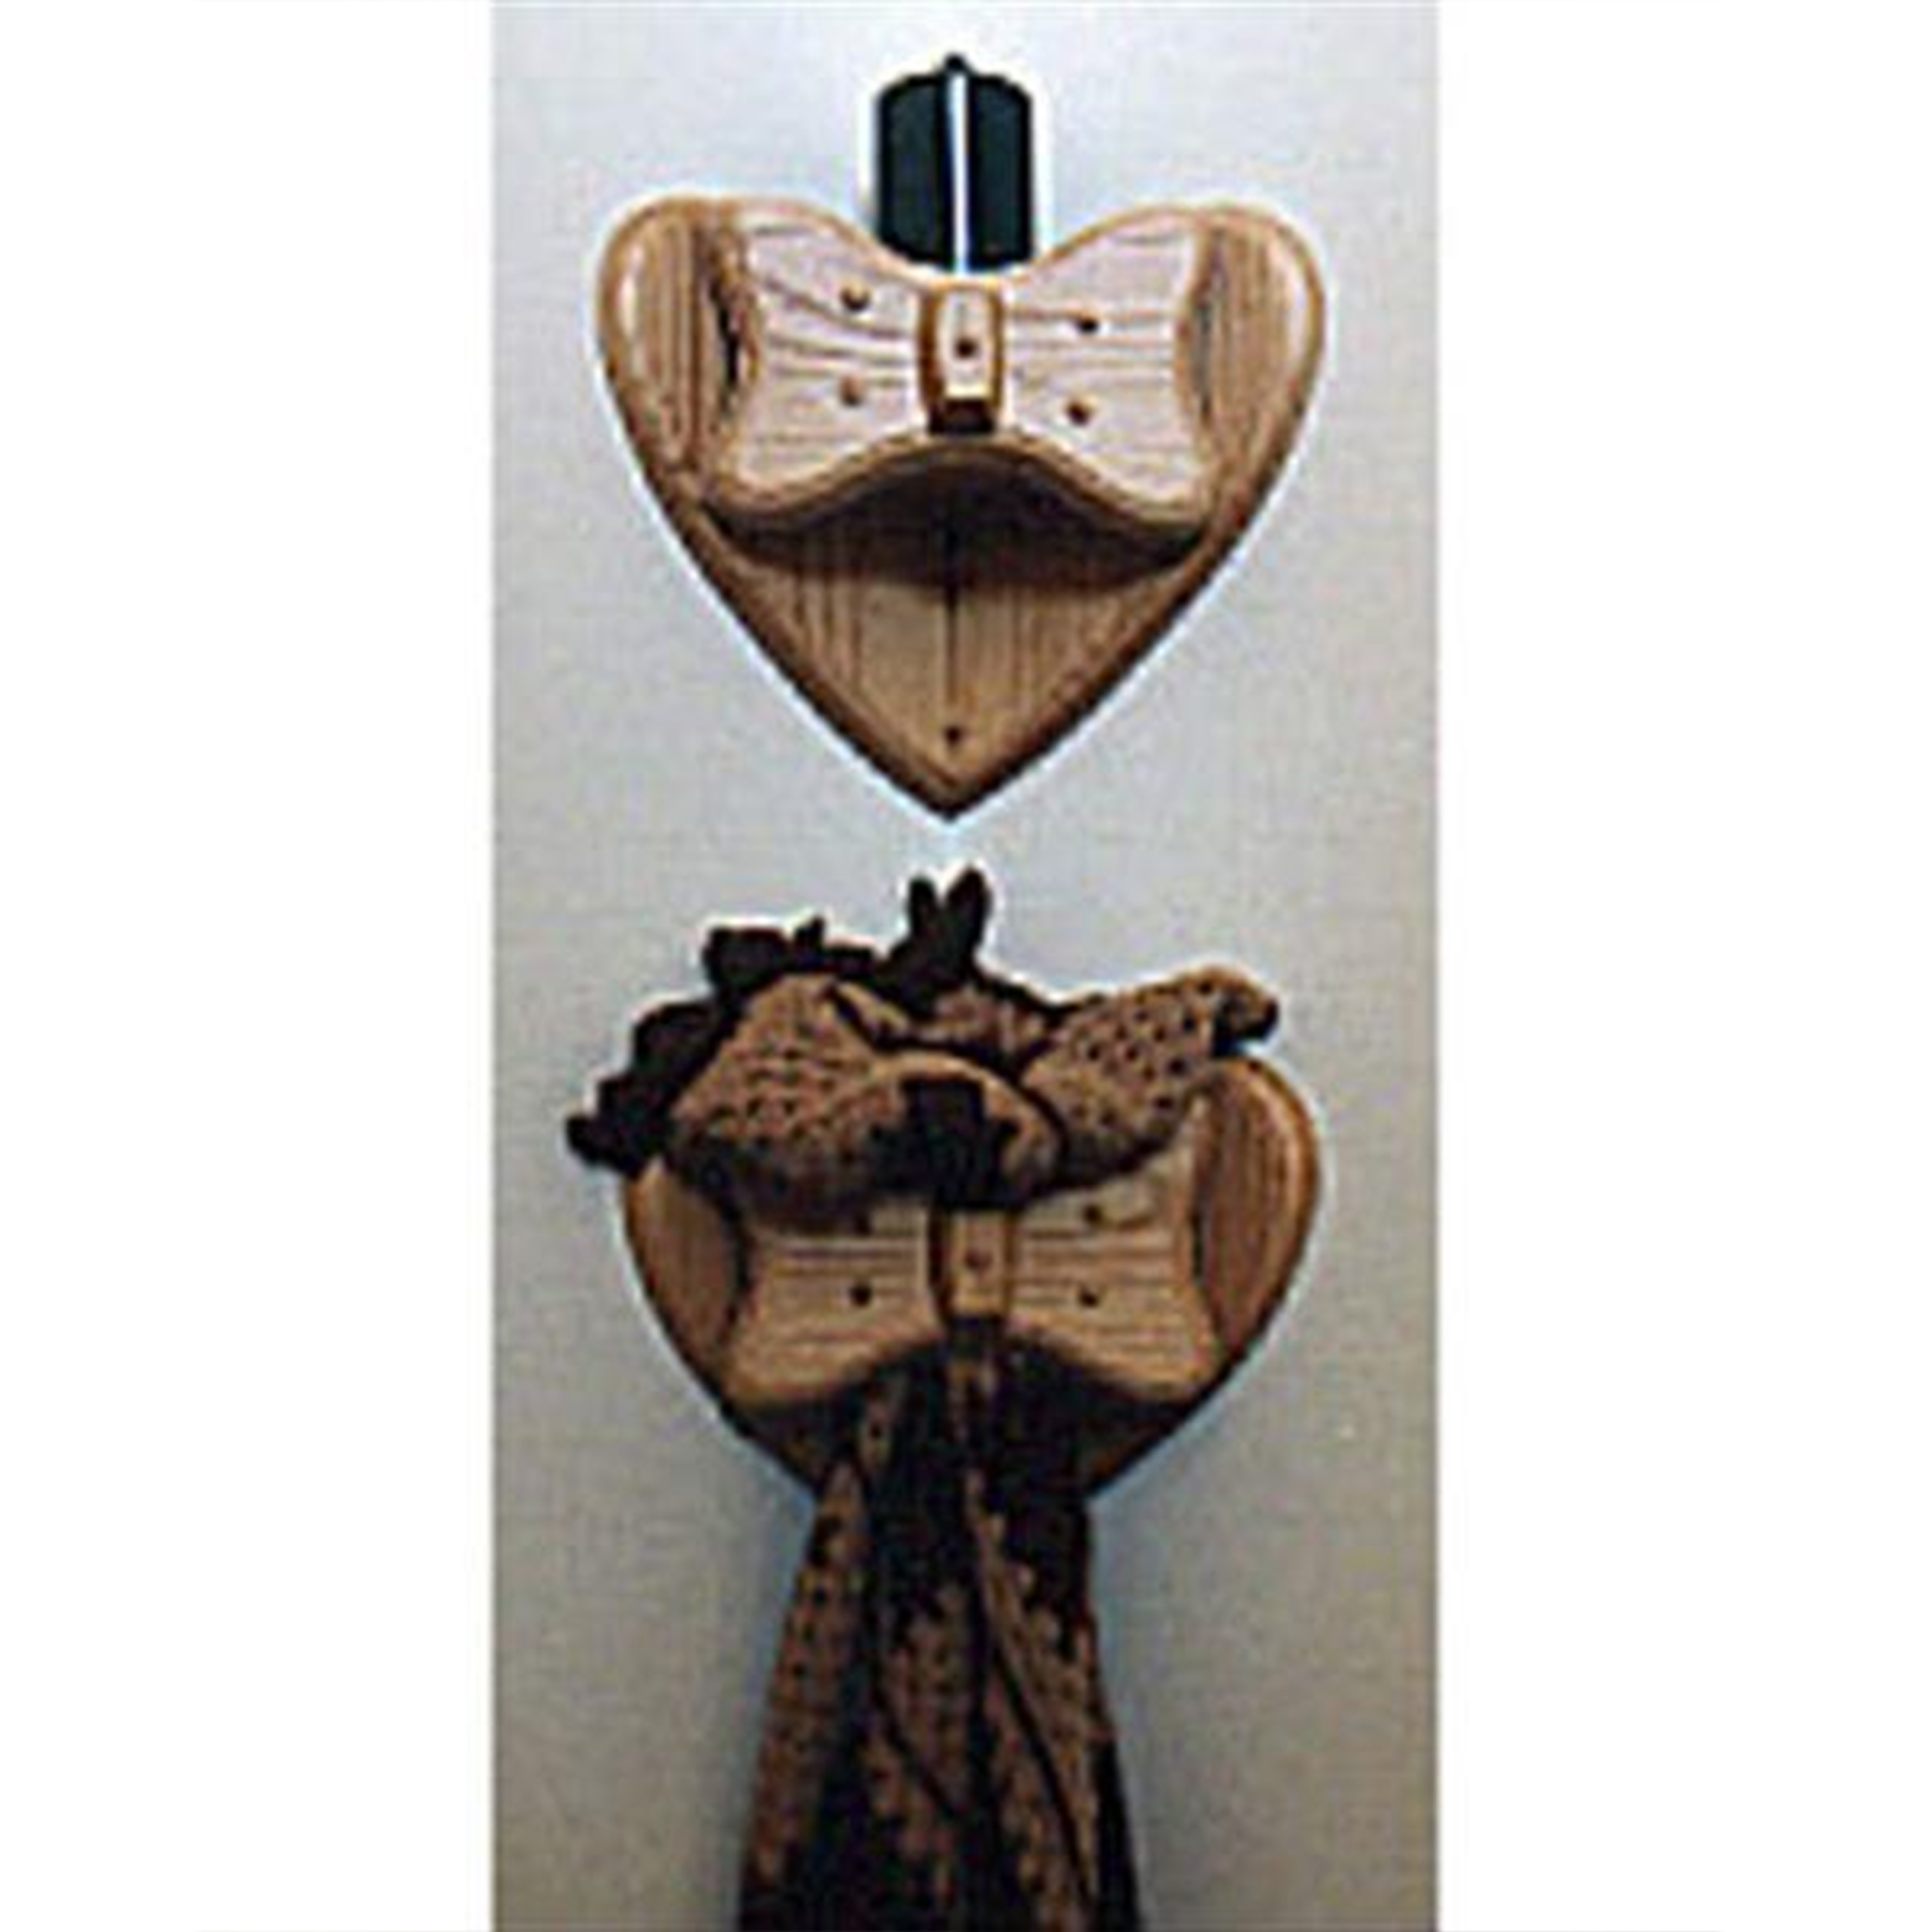 Woodworking Project Paper Plan to Build Candle Holder/Quilt Hanger